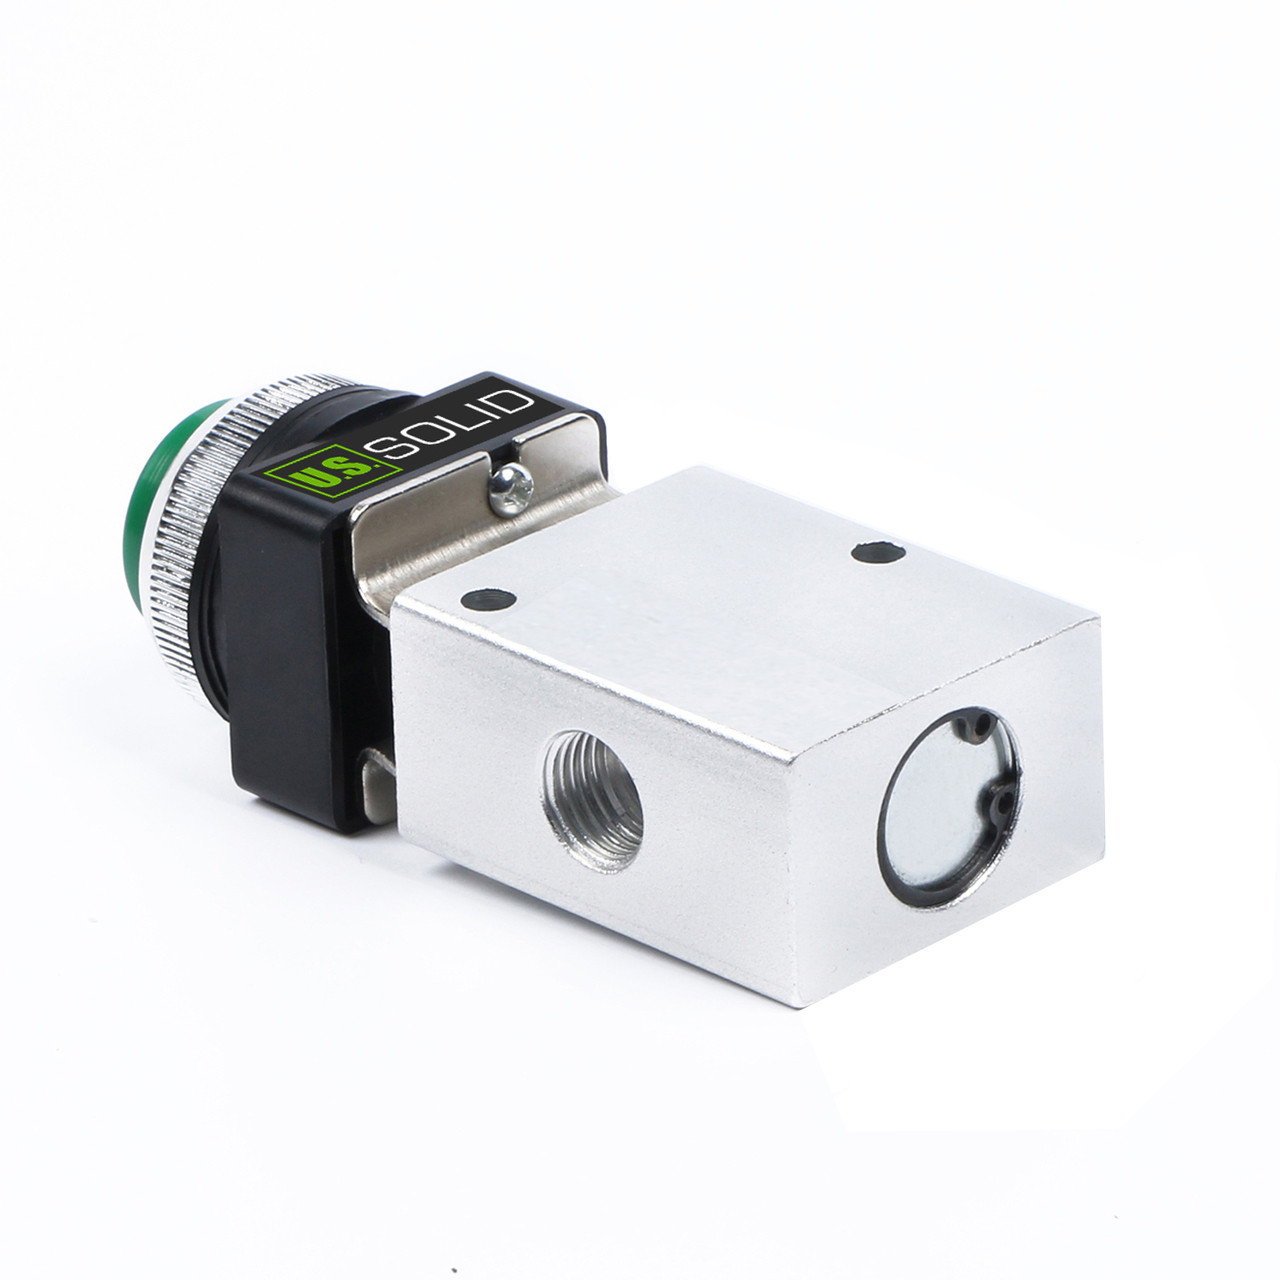 Latching Push Button Normally Closed Pneumatic Air Control Valve 2 Port 2 Way 2 Position 1//8 NPT